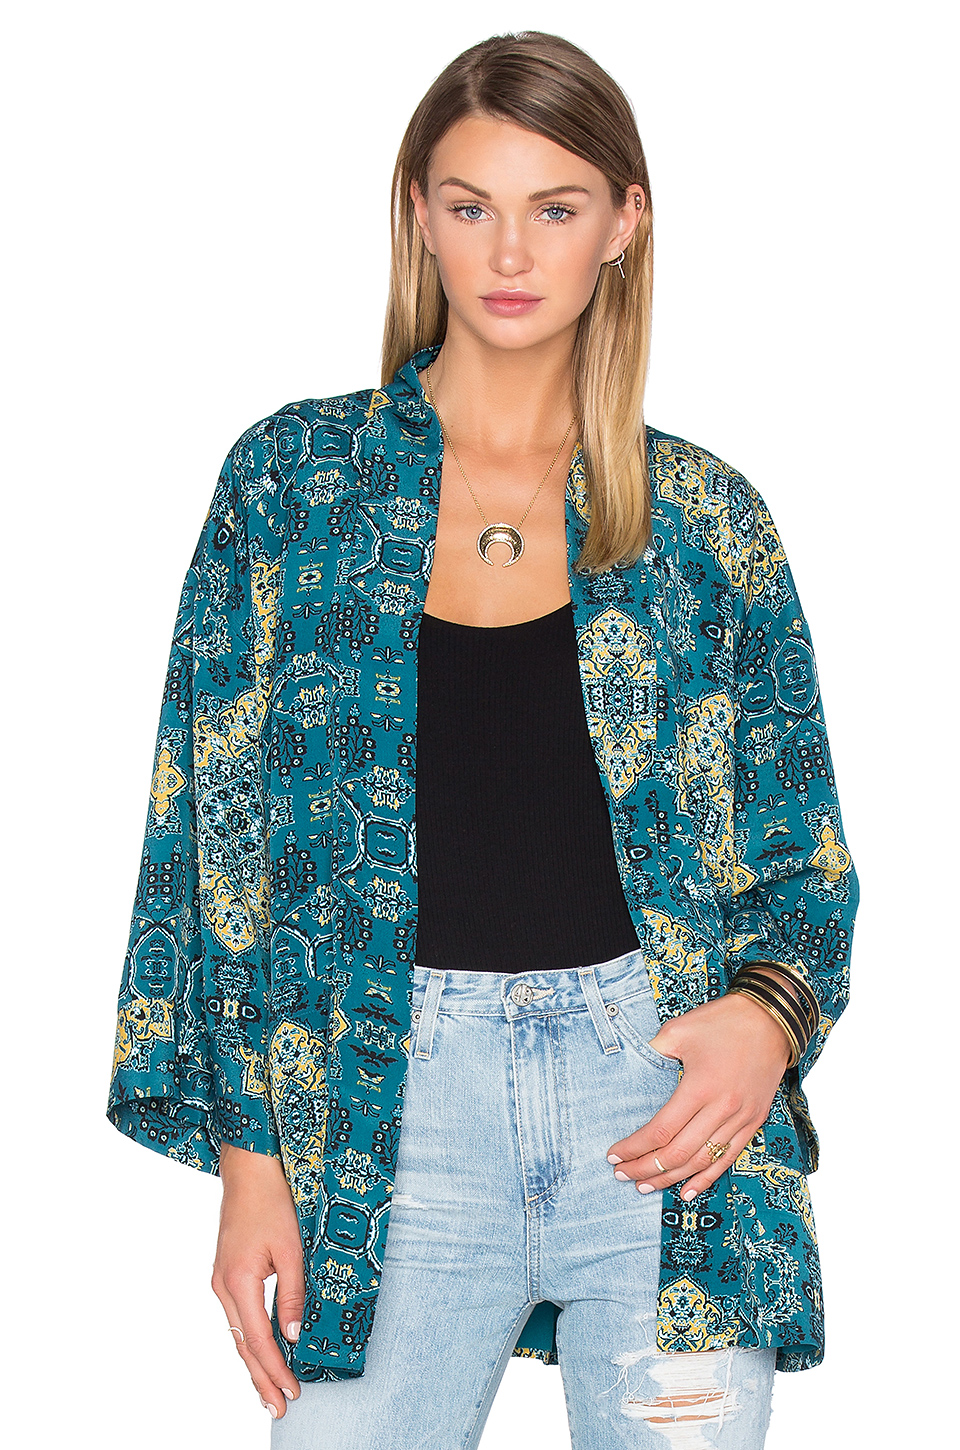 House of Harlow 1960 x Kora Bed Jacket in Moroccan Tile Print